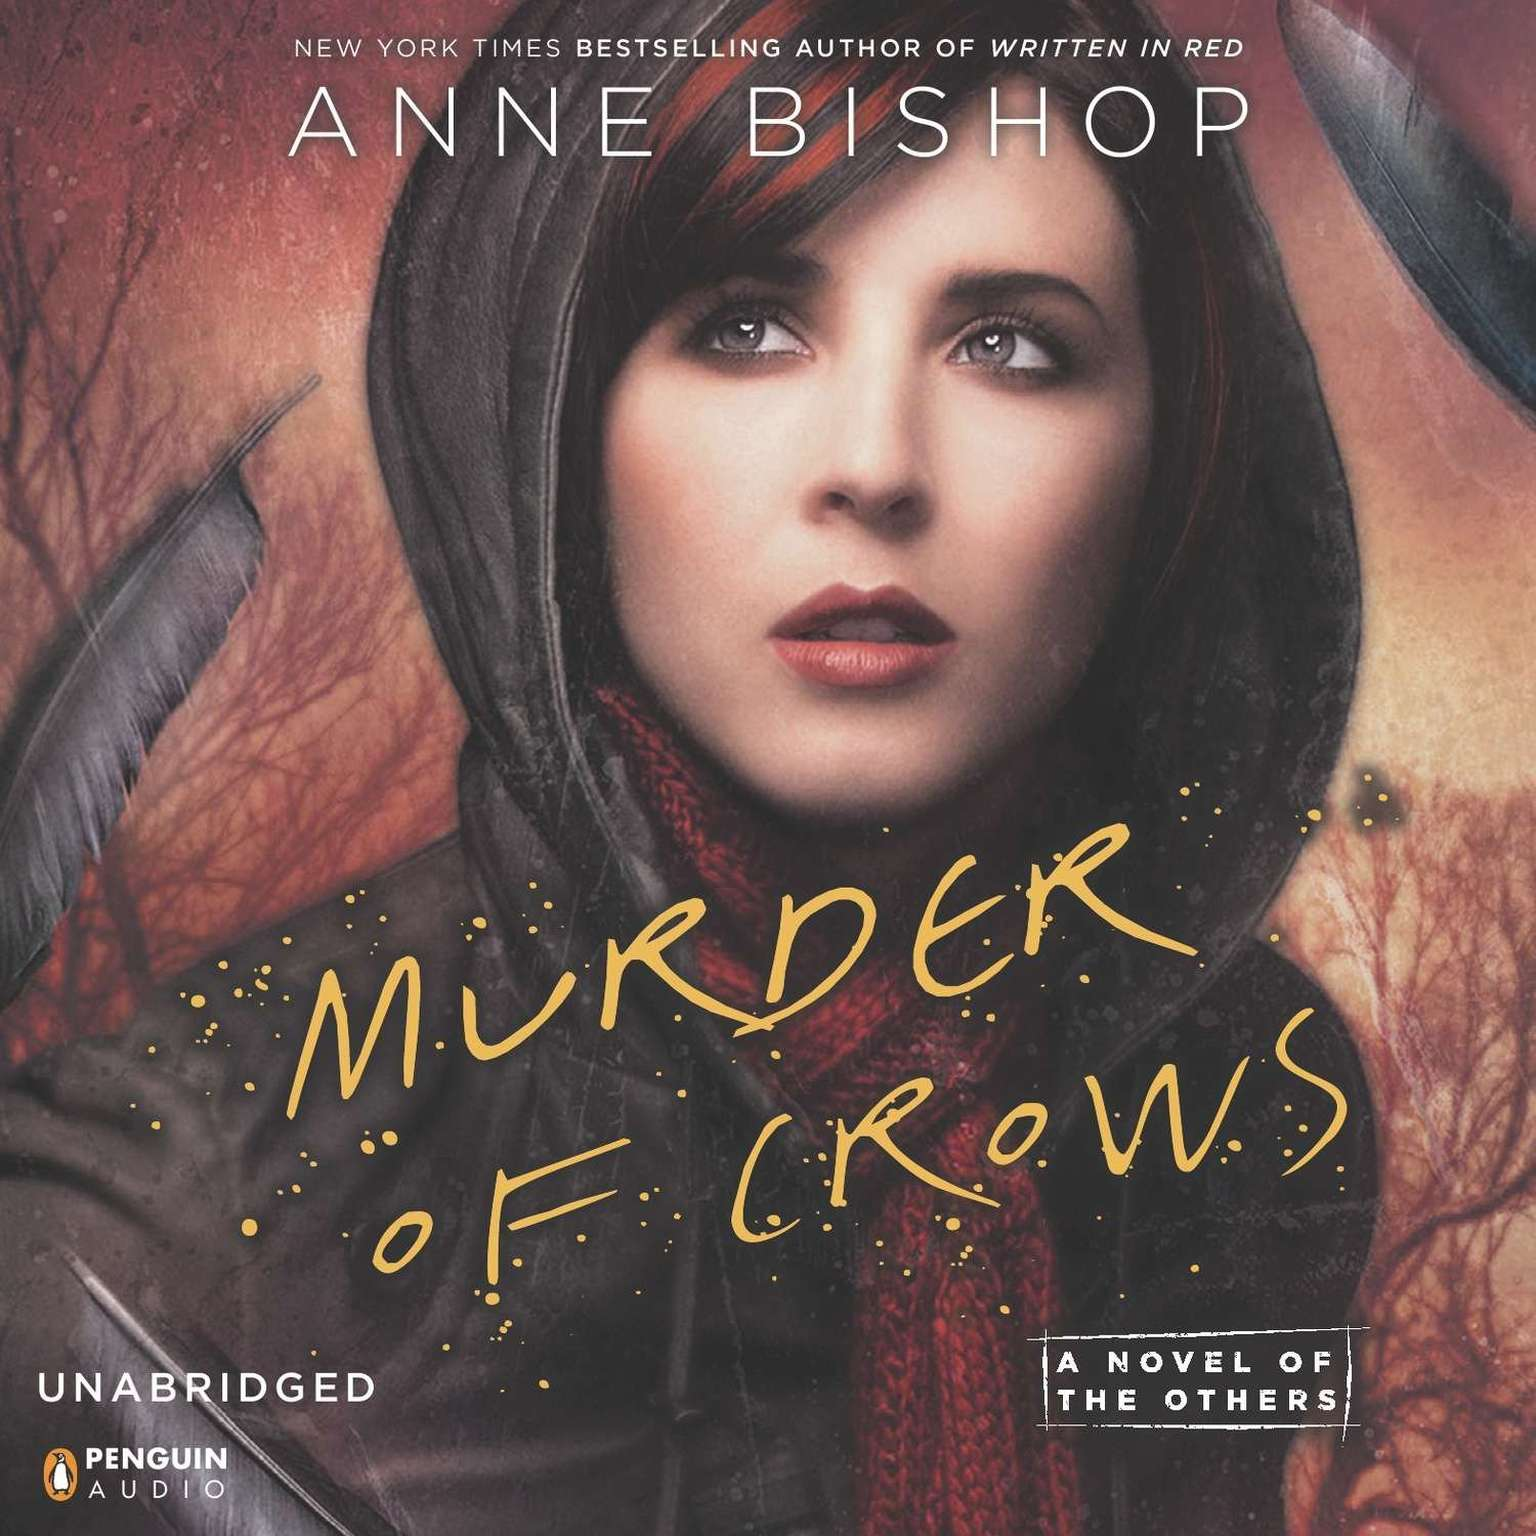 Printable Murder of Crows: A Novel of the Others Audiobook Cover Art